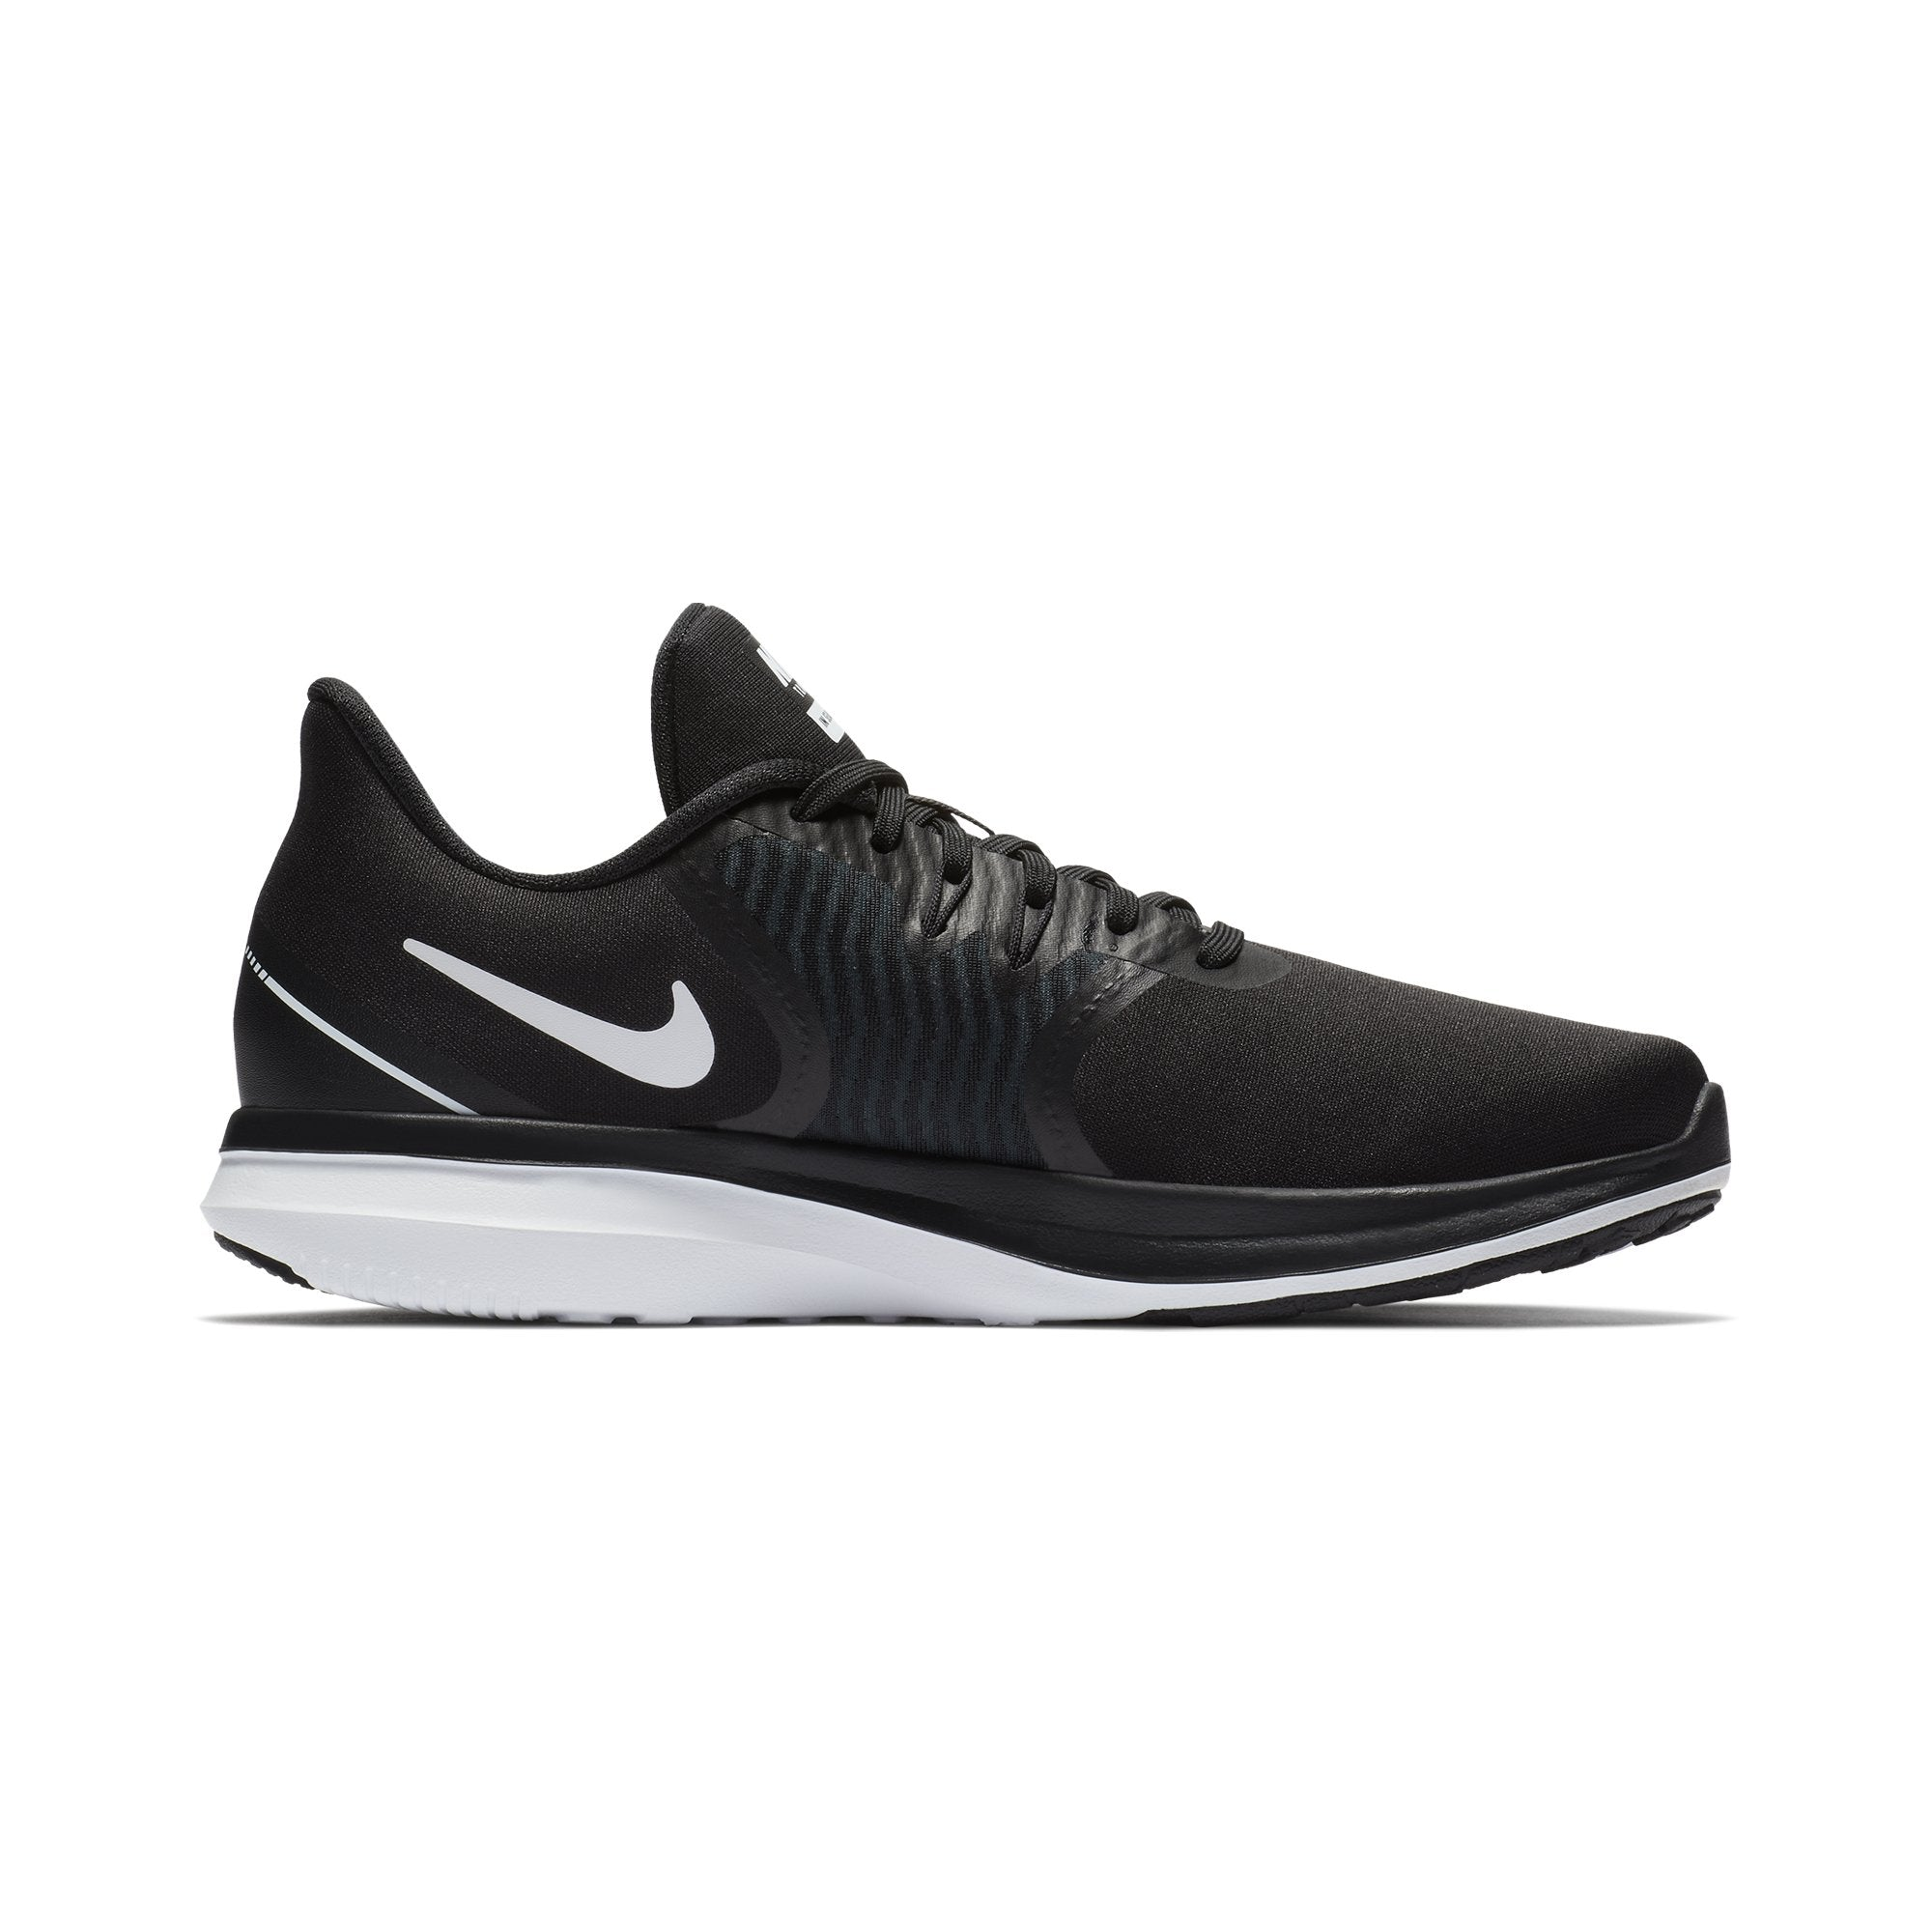 timeless design 73a8c 7ecfe Buy Nike Women s In-Season Tr 8 Training Shoes, Black White Anthracite  Online in Singapore   Royal Sporting House